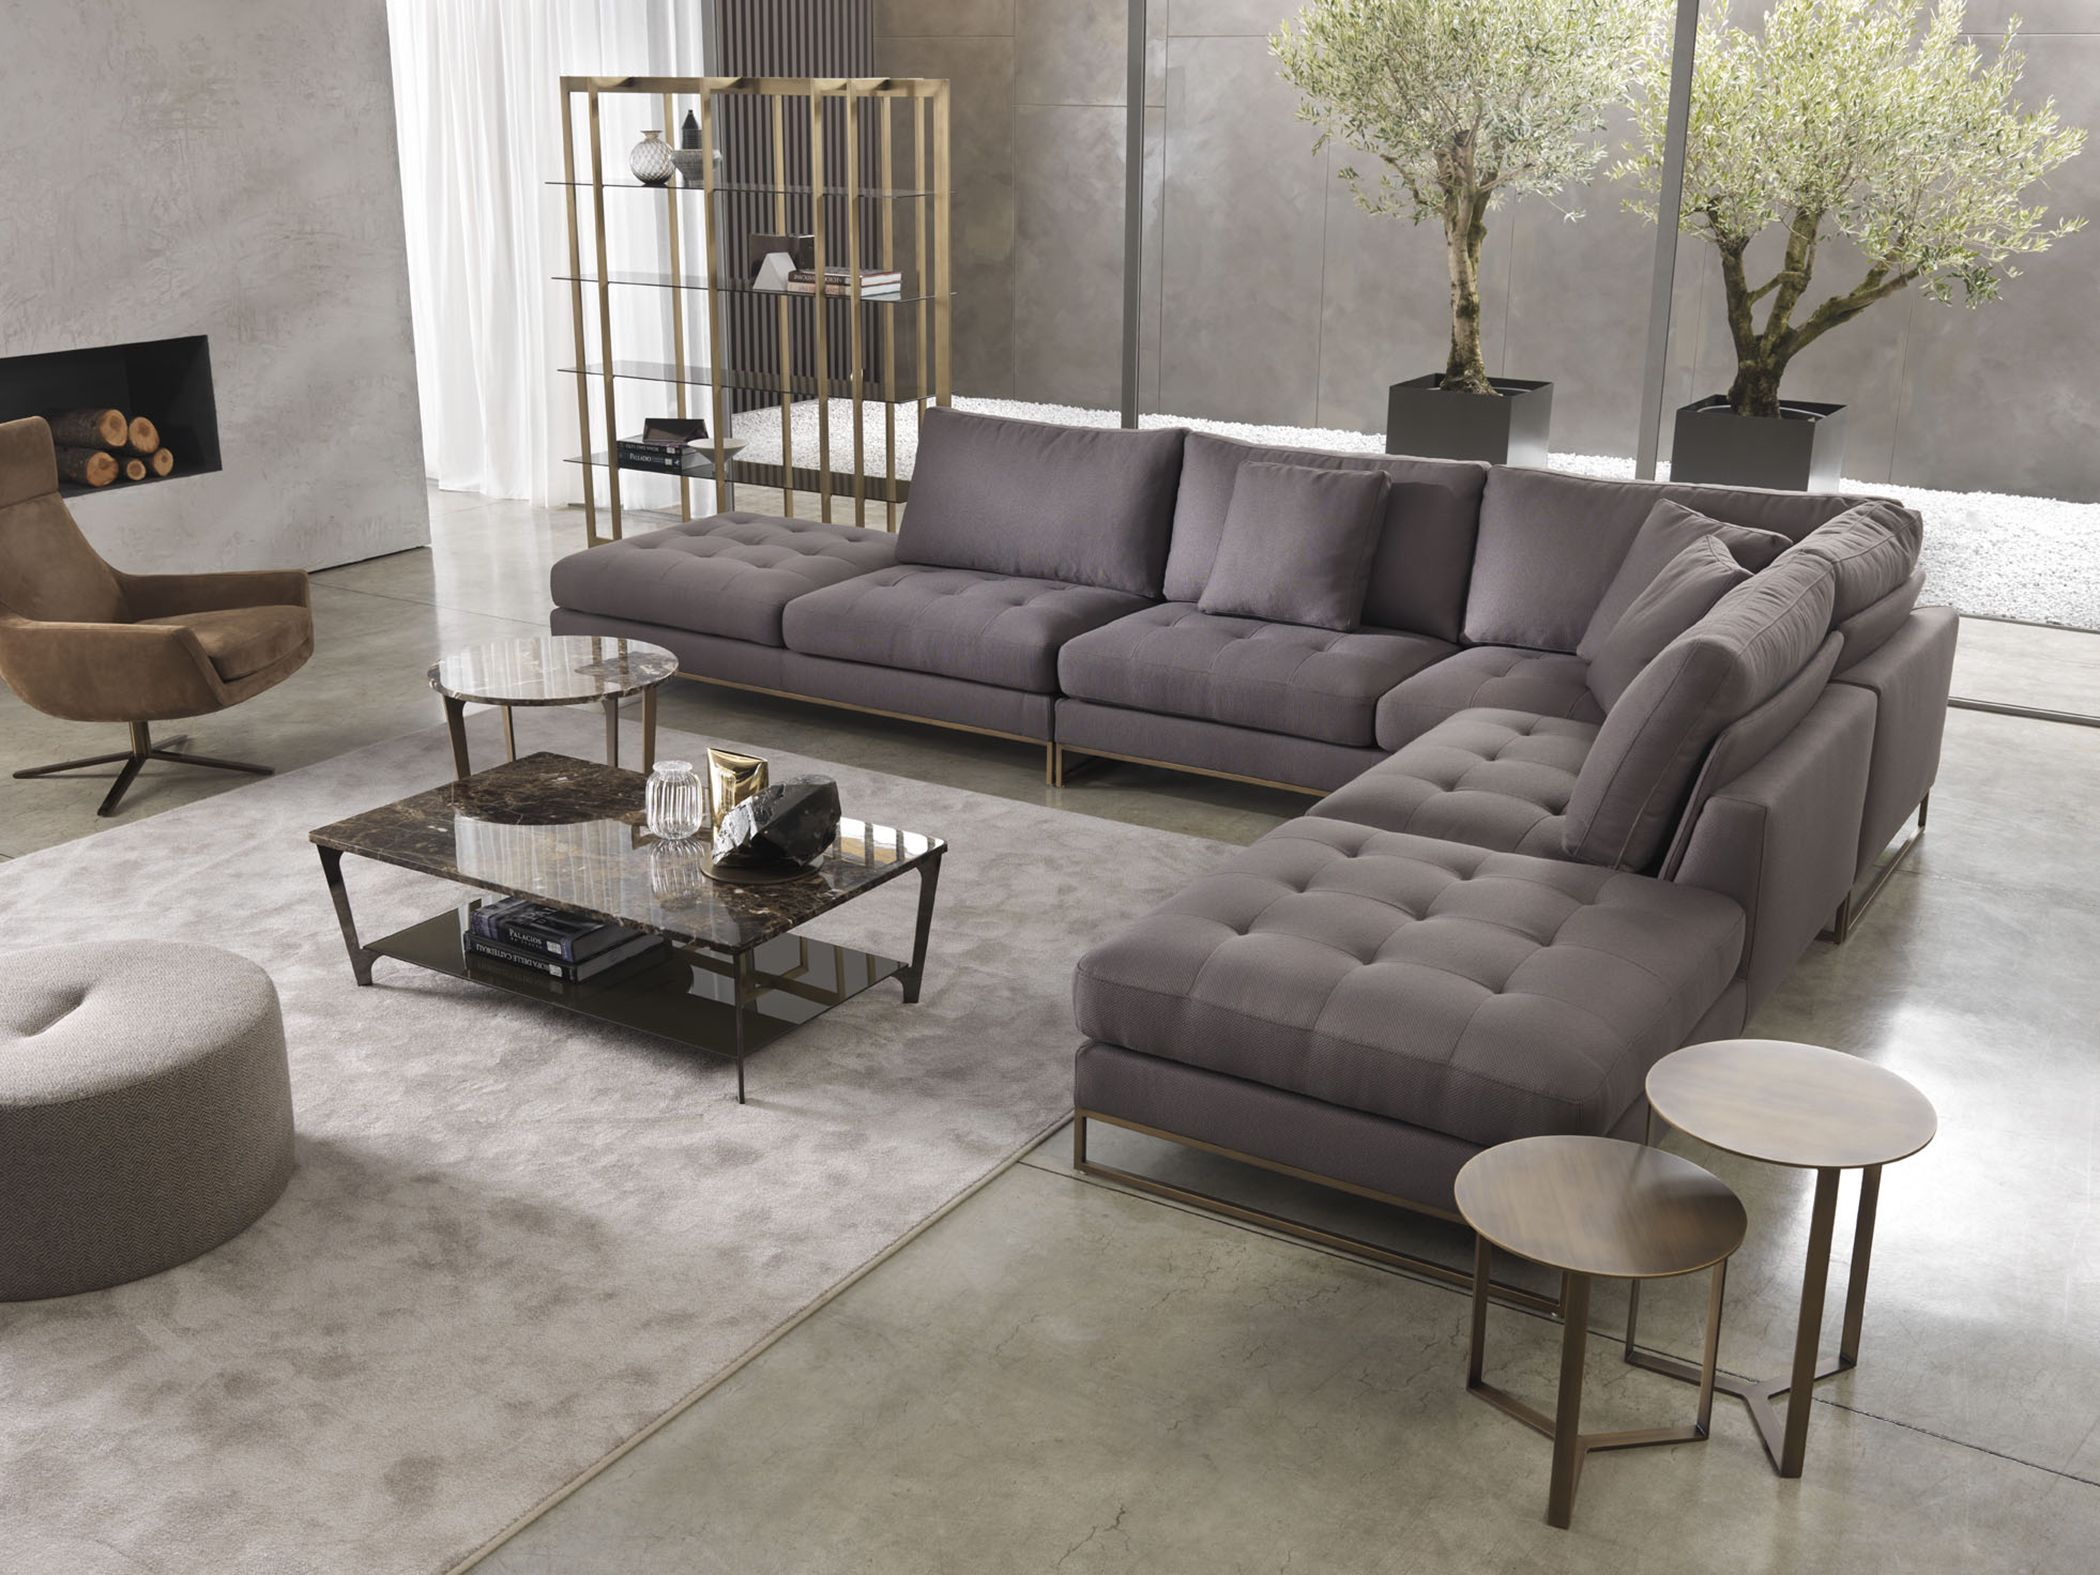 Slide Gallery Marelli Contract Living room modern